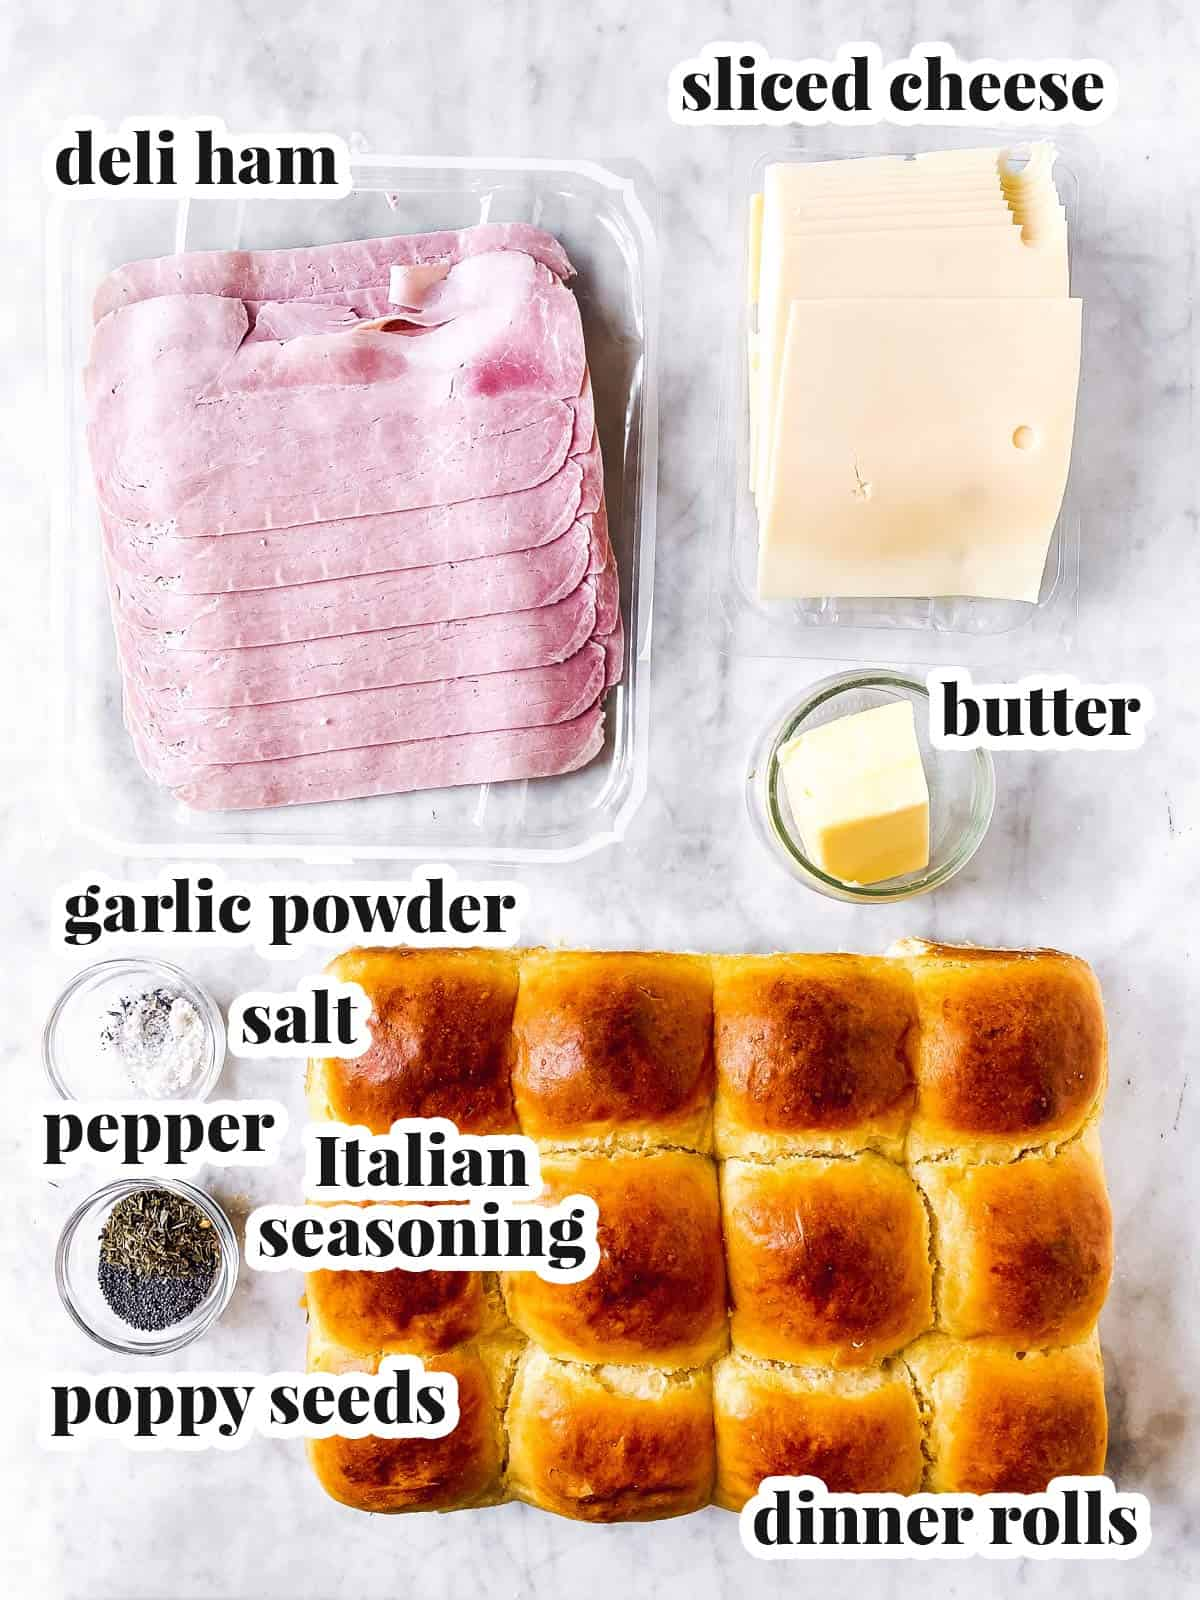 ingredients for hot ham sliders with text labels